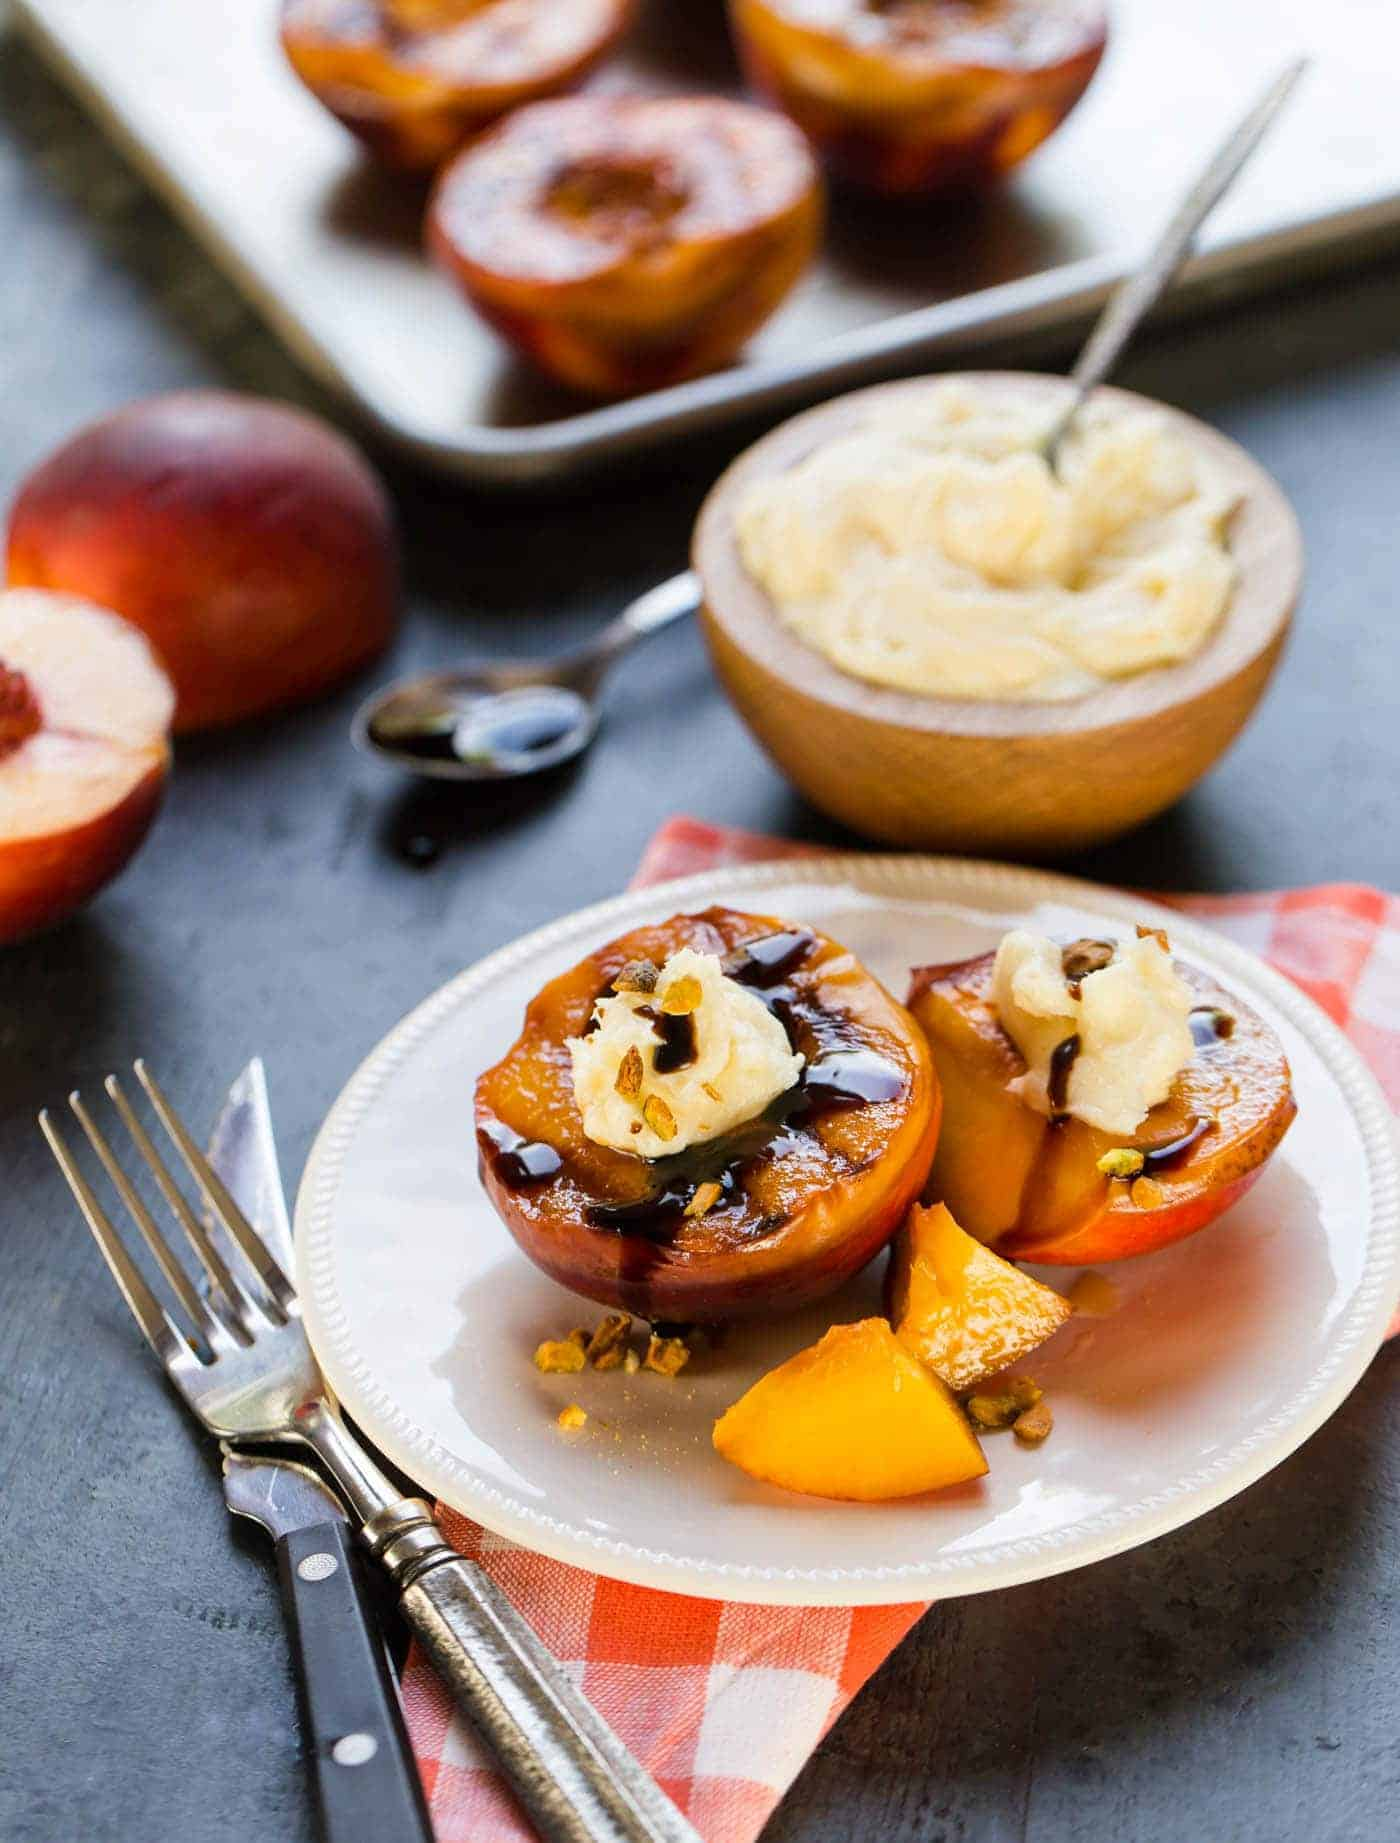 Grilled peaches with mascarpone cheese, pistachos, and balsamic glaze